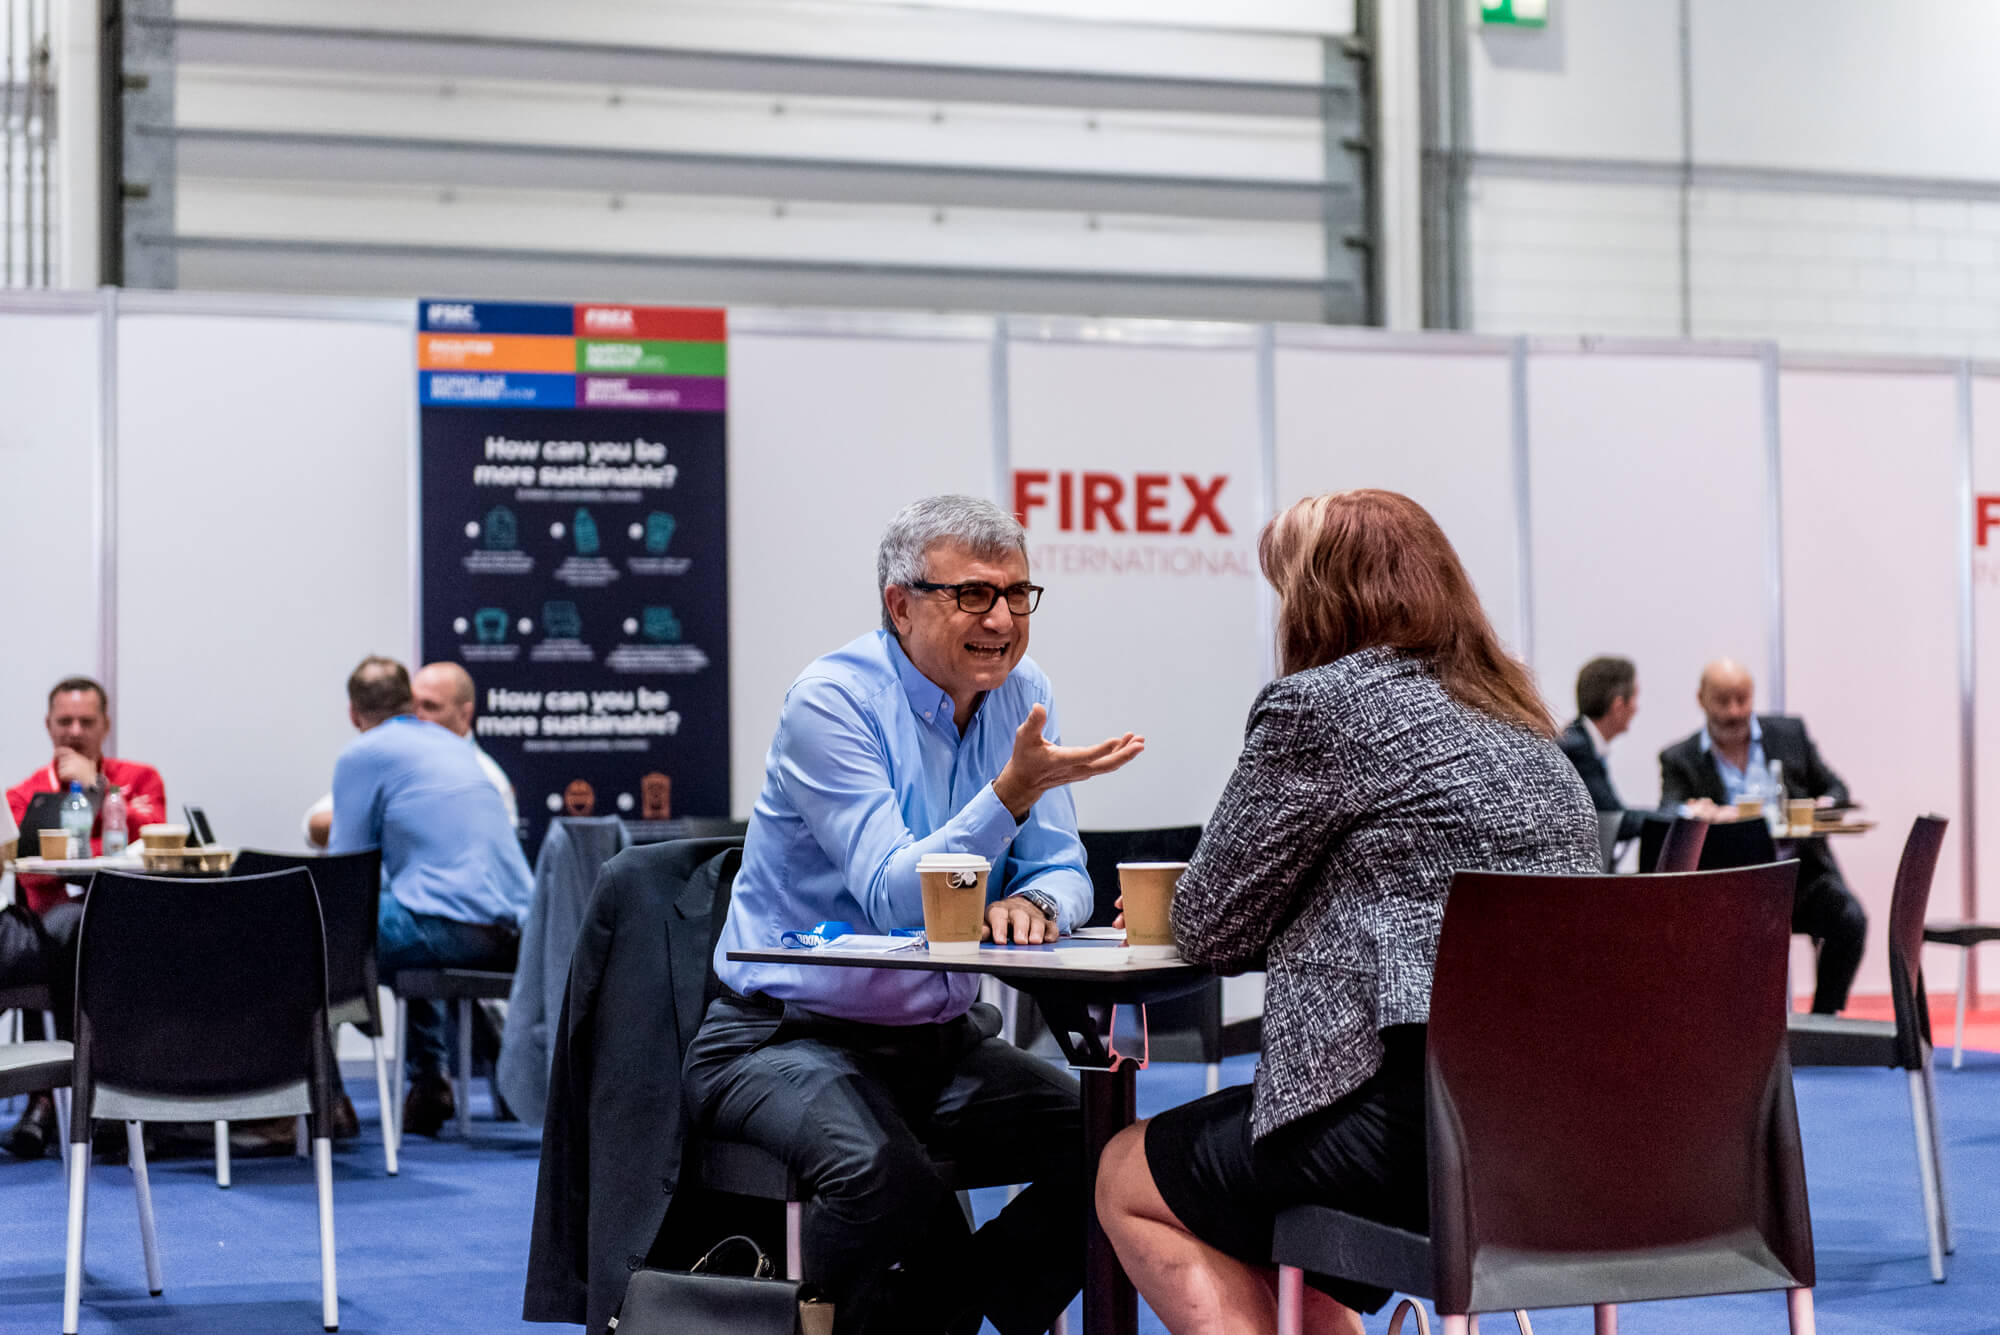 Two individuals talking at a coffee table at FIREX 2019